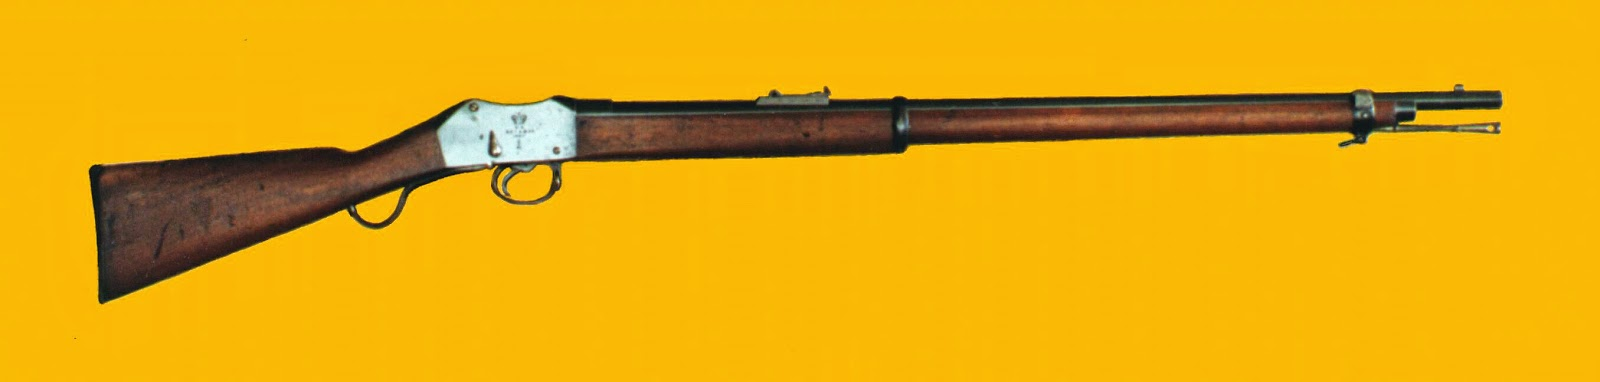 Antique Real Rifles Store: Collect Rare Weapons From ...